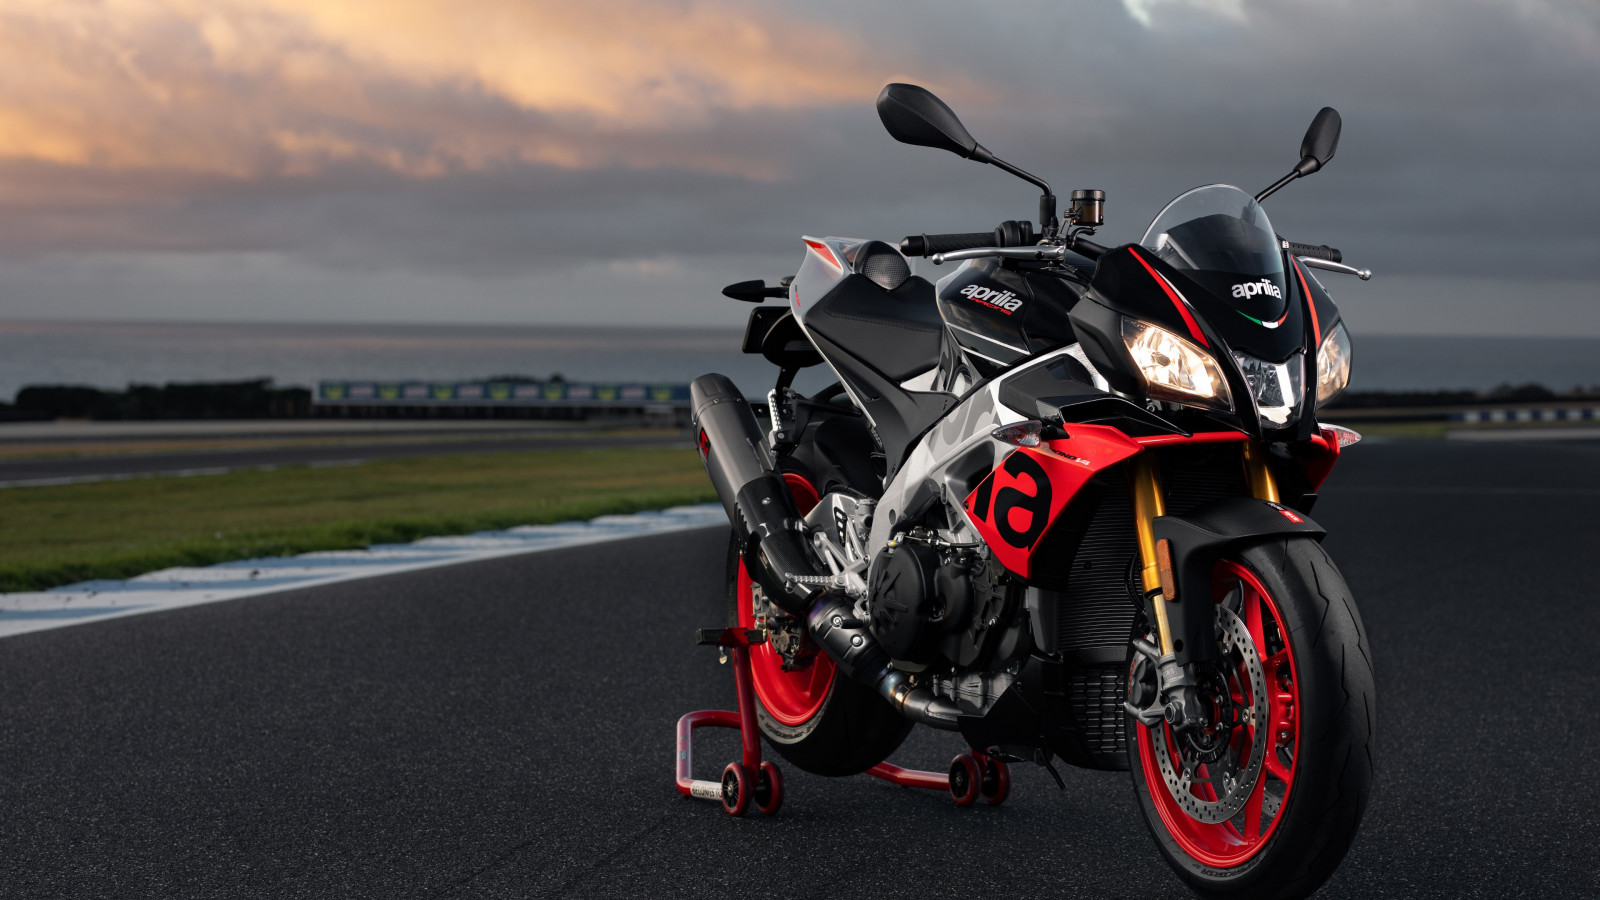 Aprilia Tuono V4 1100 Factory wallpaper 1600x900